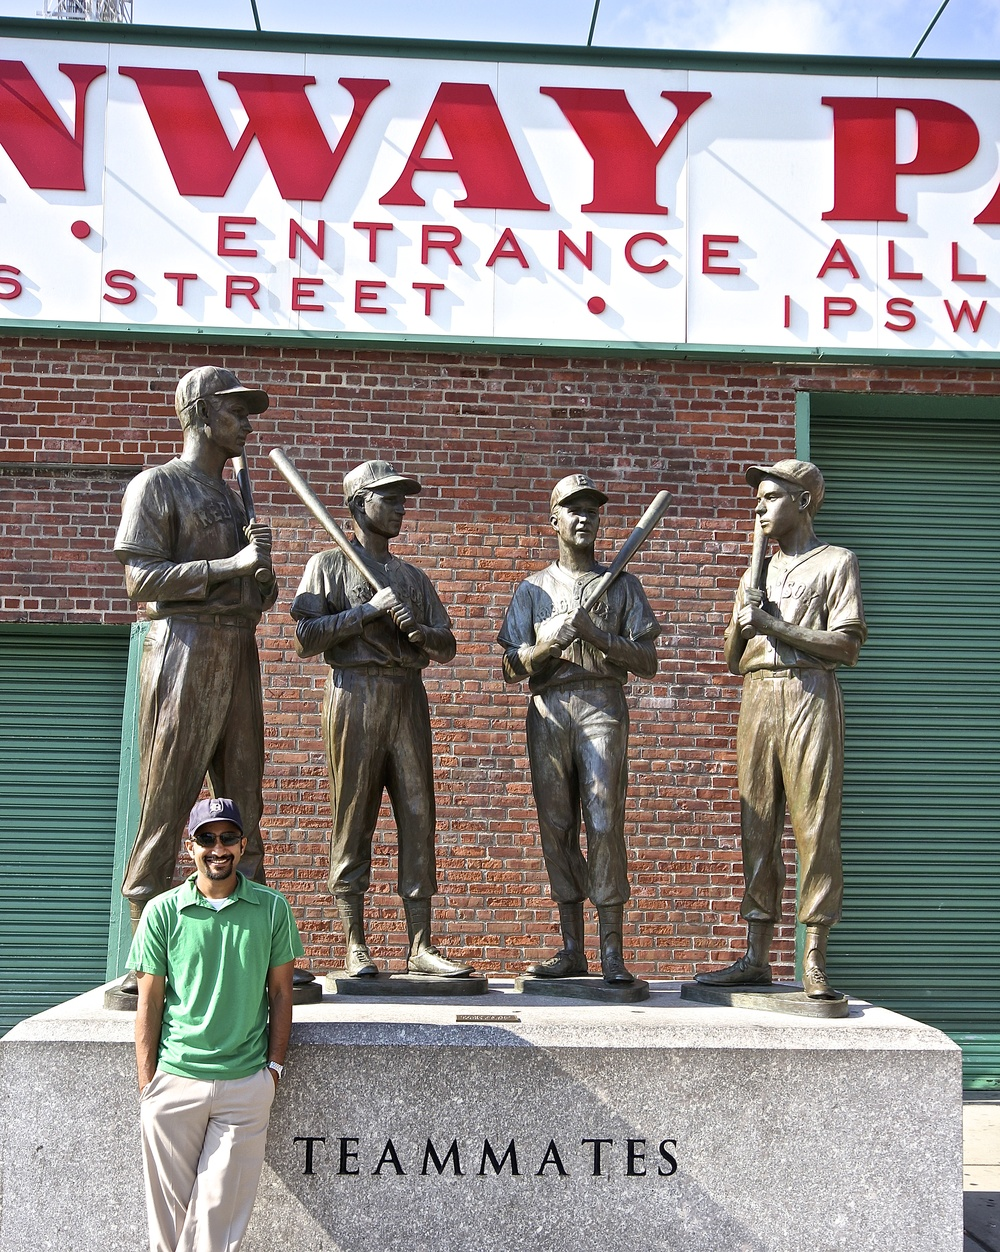 Me and the greats:  Ted Williams, Johnny Pesky, Bobby Doerr and Dom Dimaggio